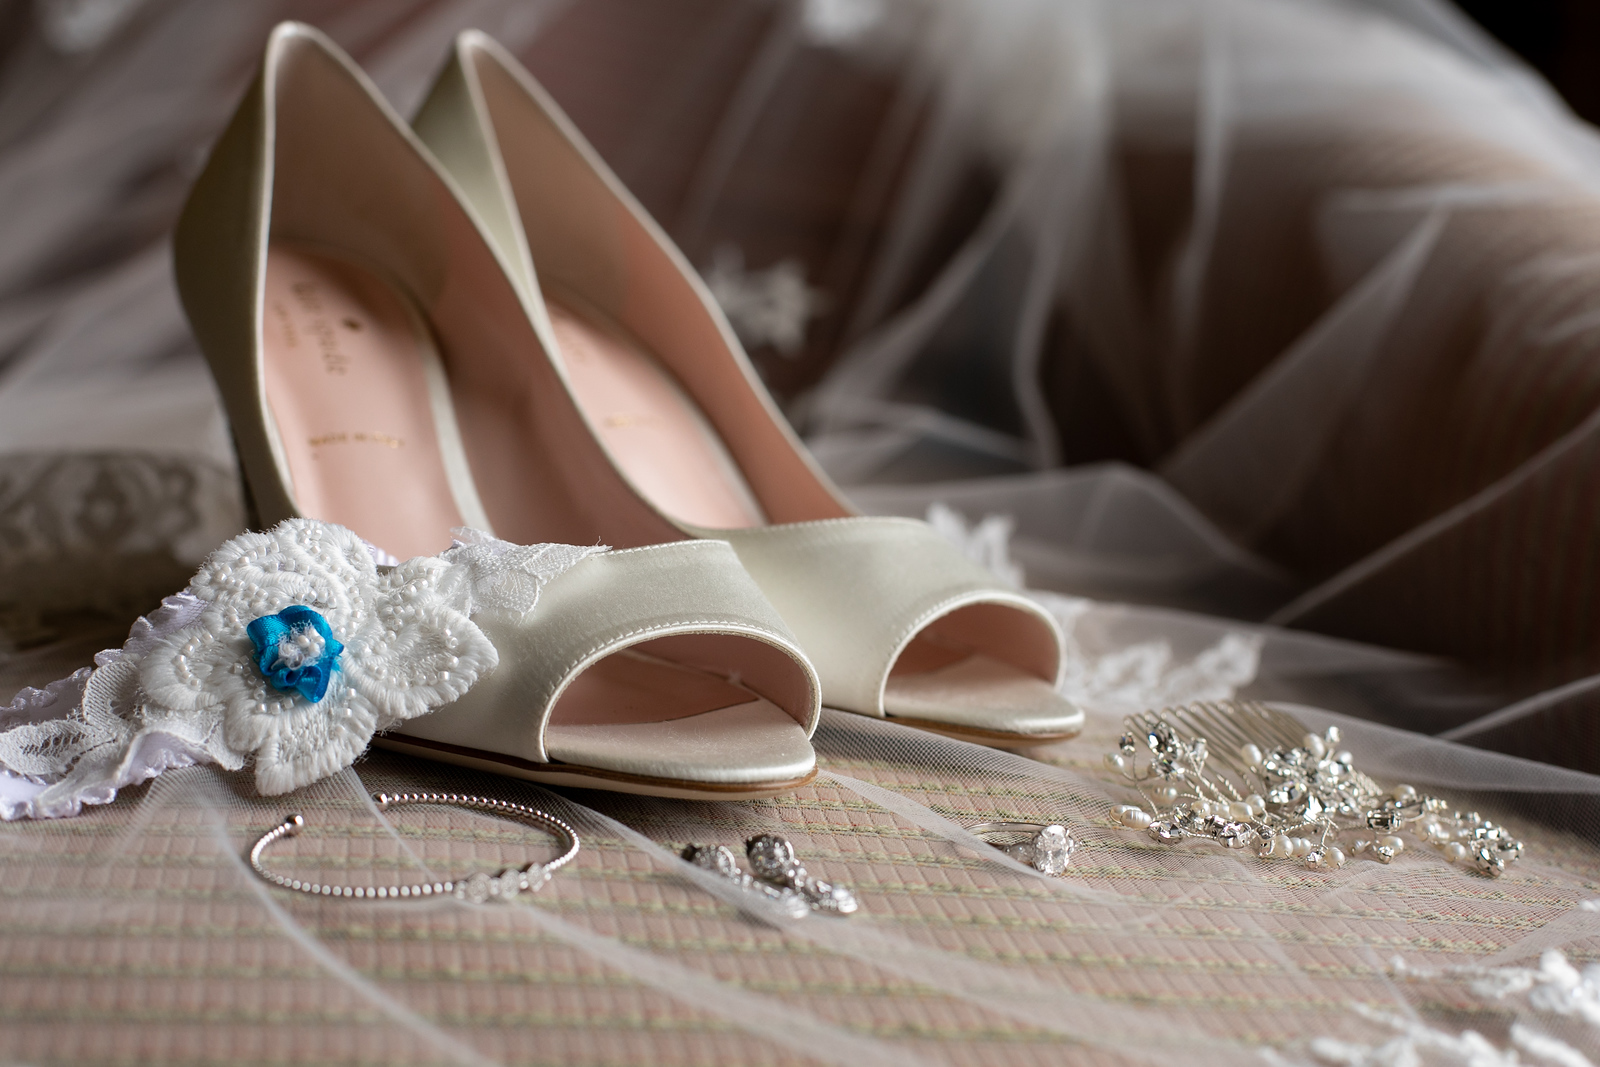 cream colored wedding high heeled shoes with a white and blue garter atop a wedding vial with the bride's jewelry